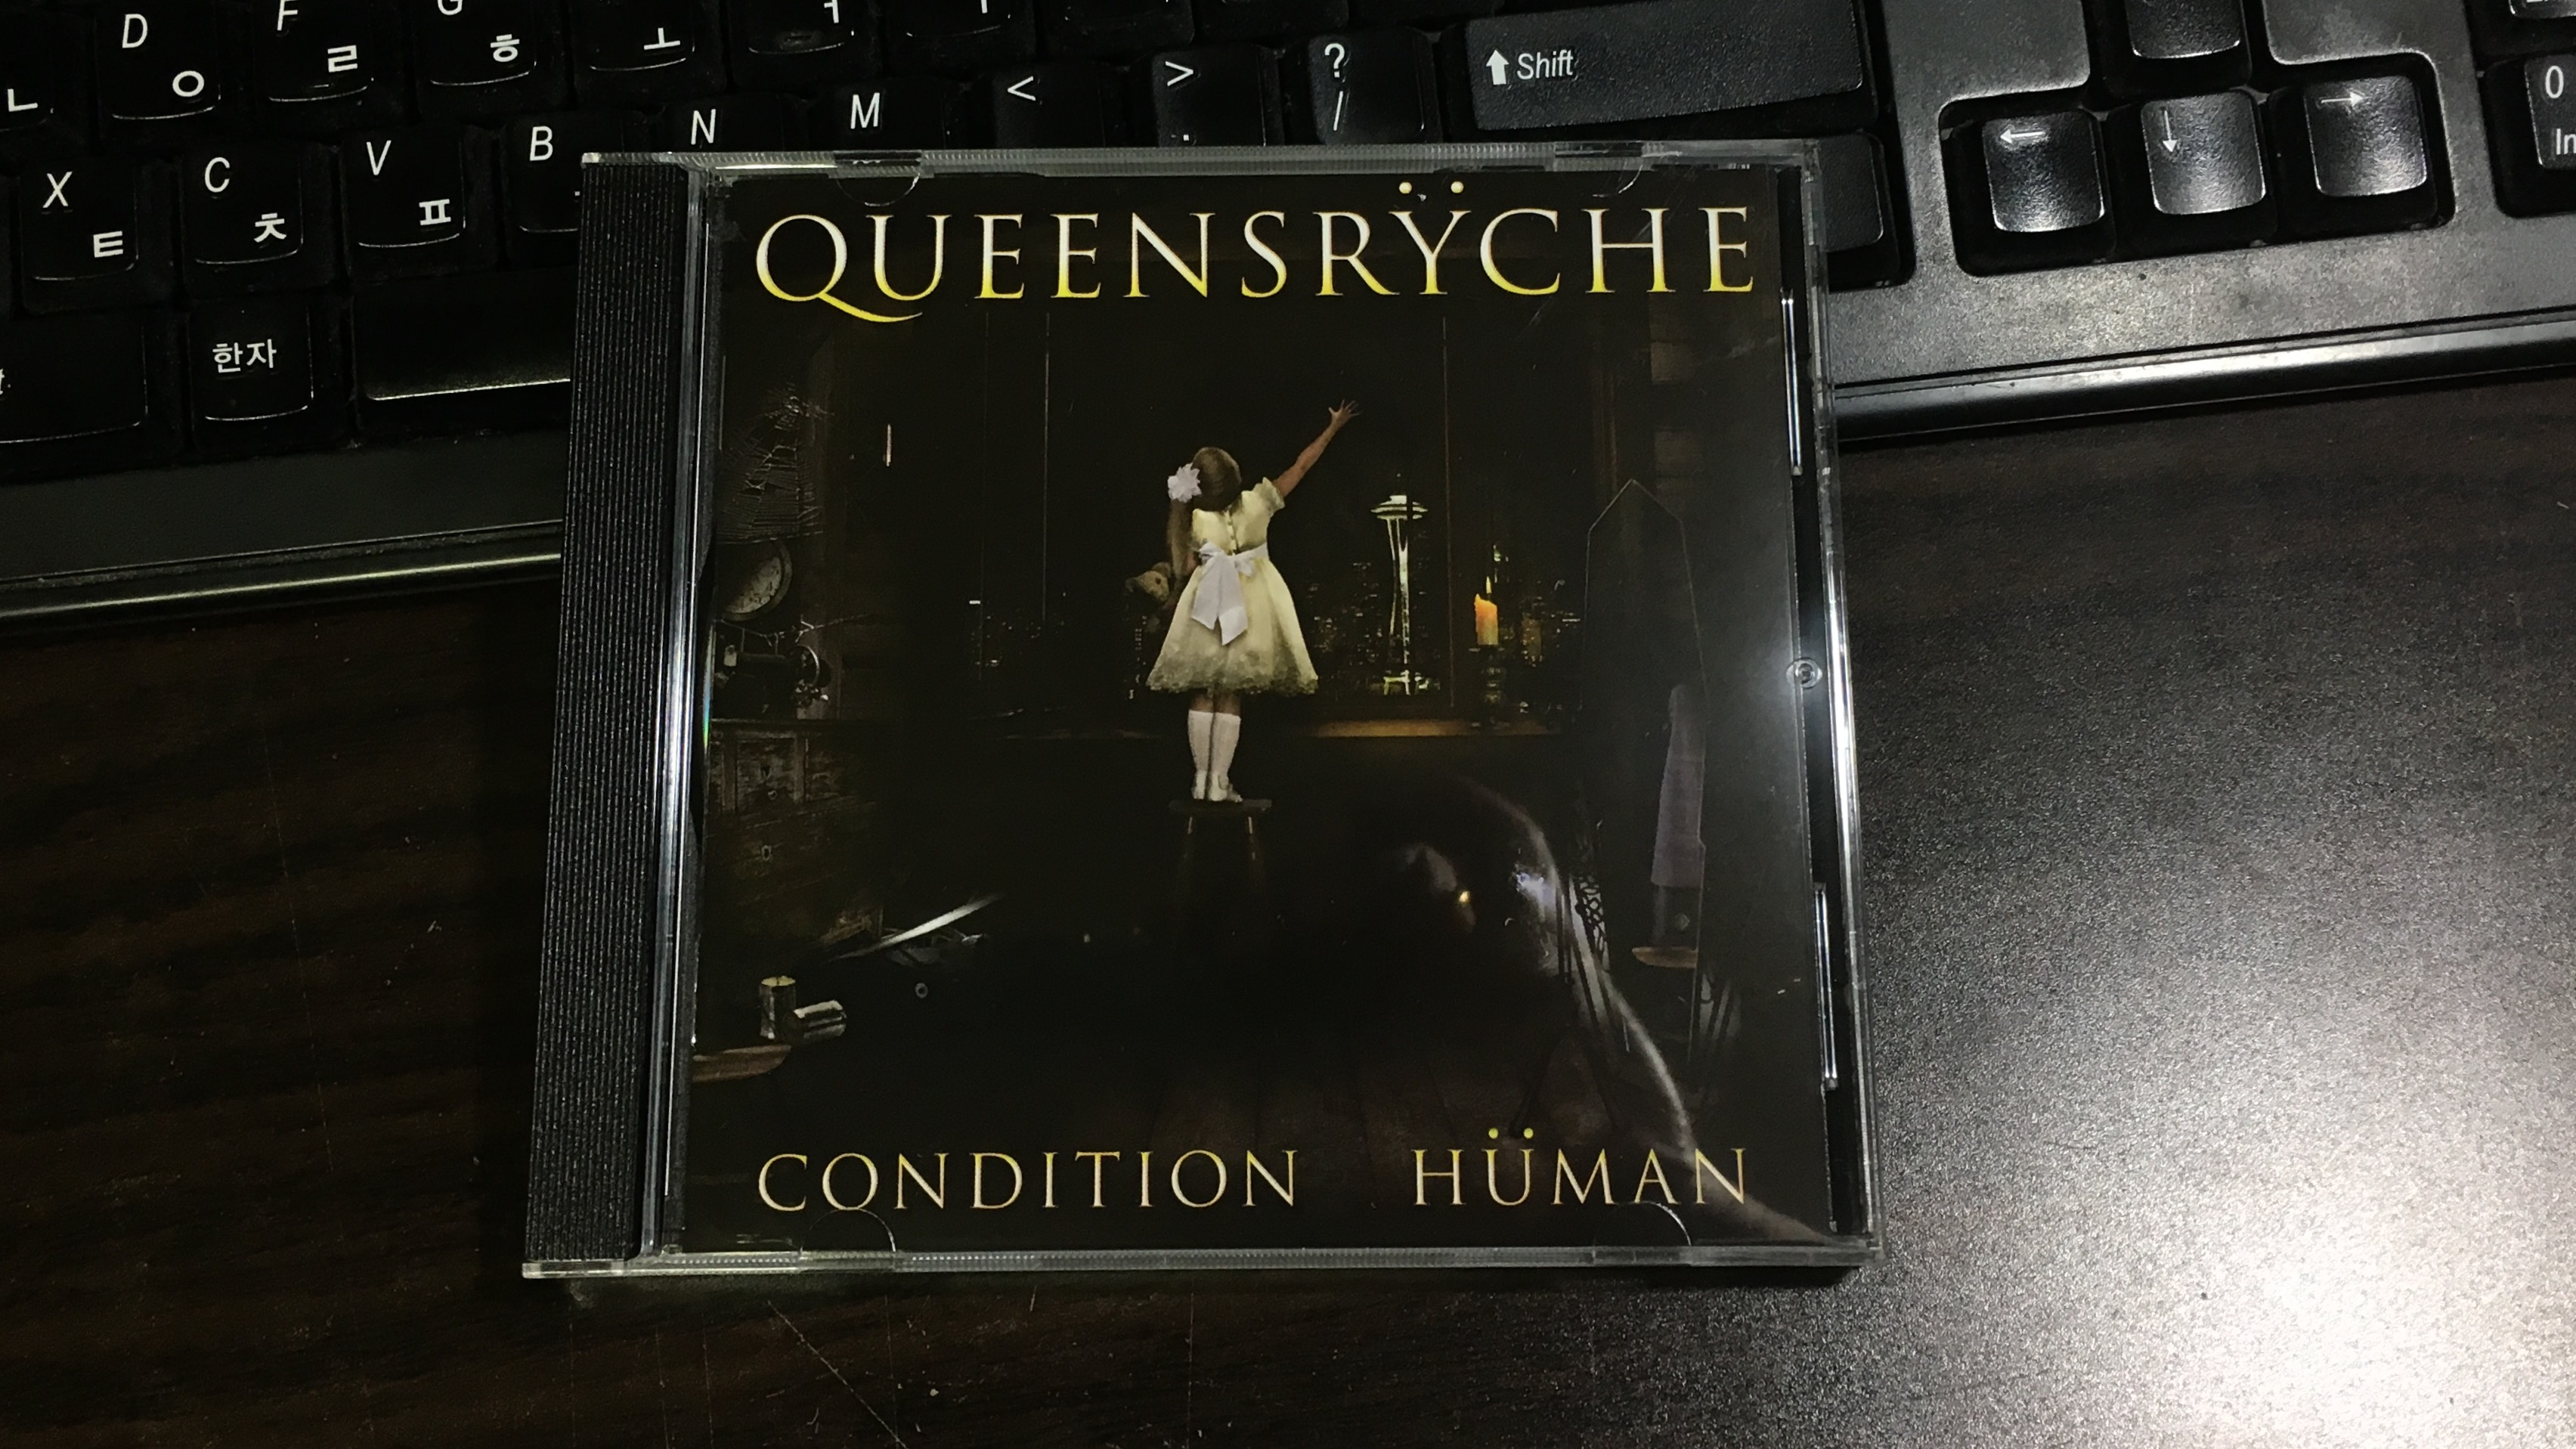 Condition Human - Queensryche / 2015